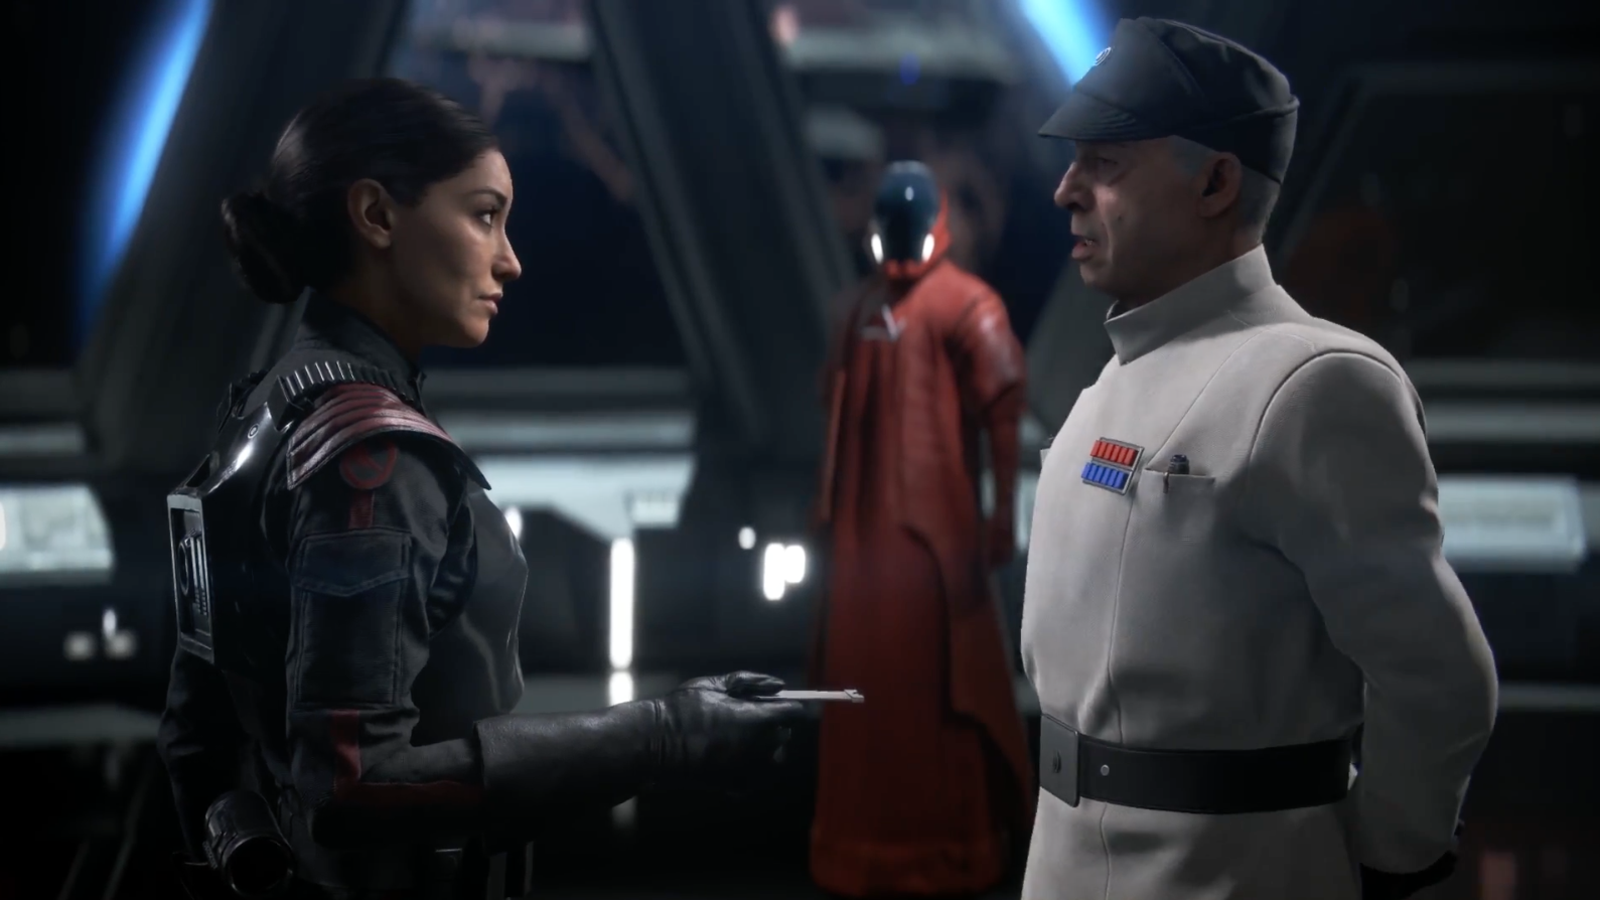 We've Finally Seen A Campaign Mission From Star Wars ...